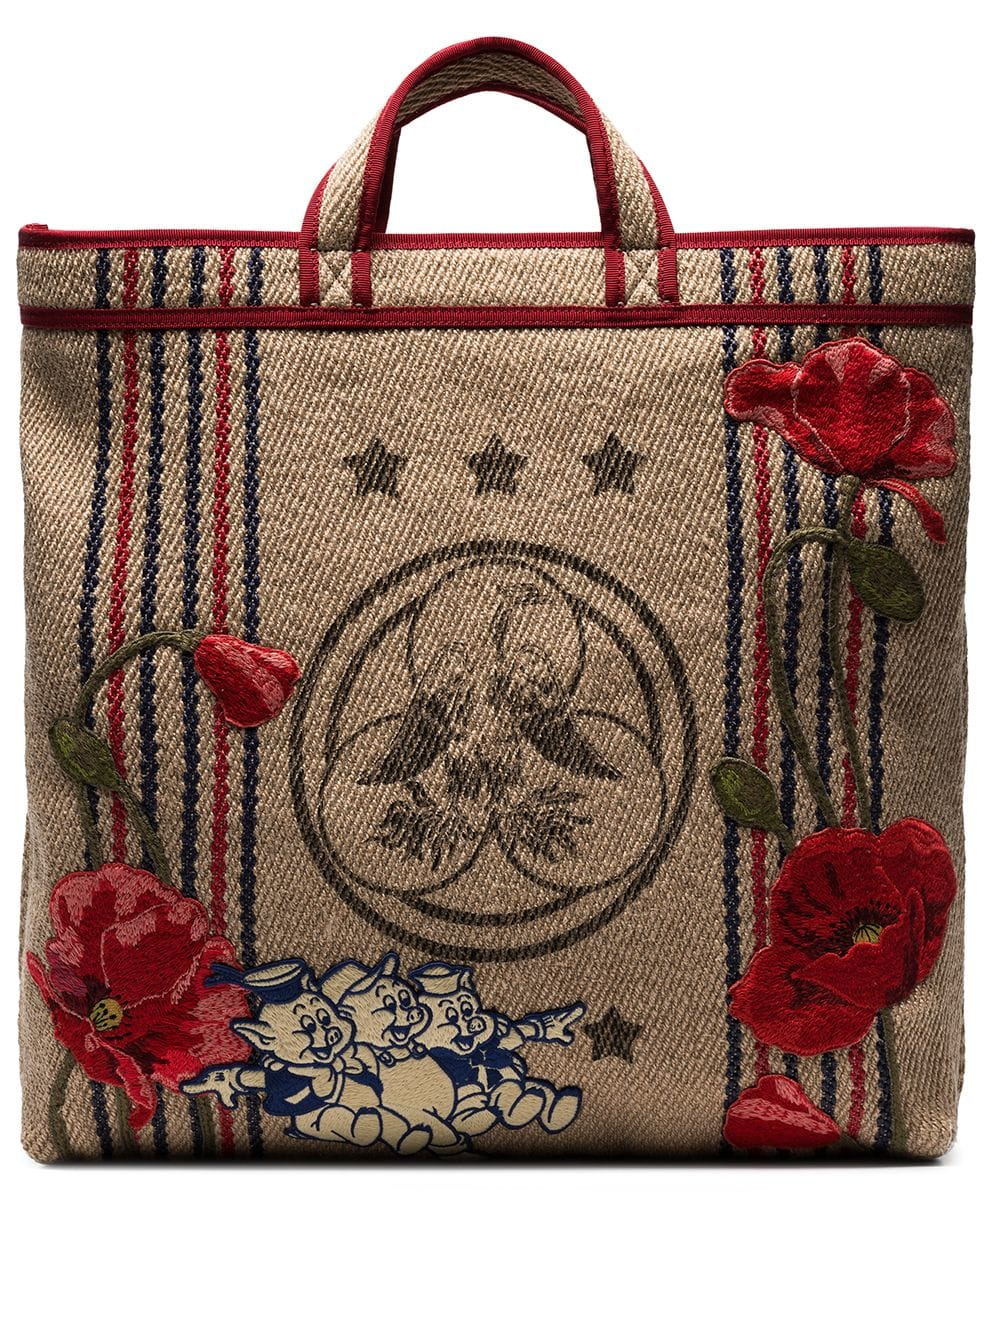 Gucci Gucci Beige Floral Embroidered Pig Patch Jute Tote Bag